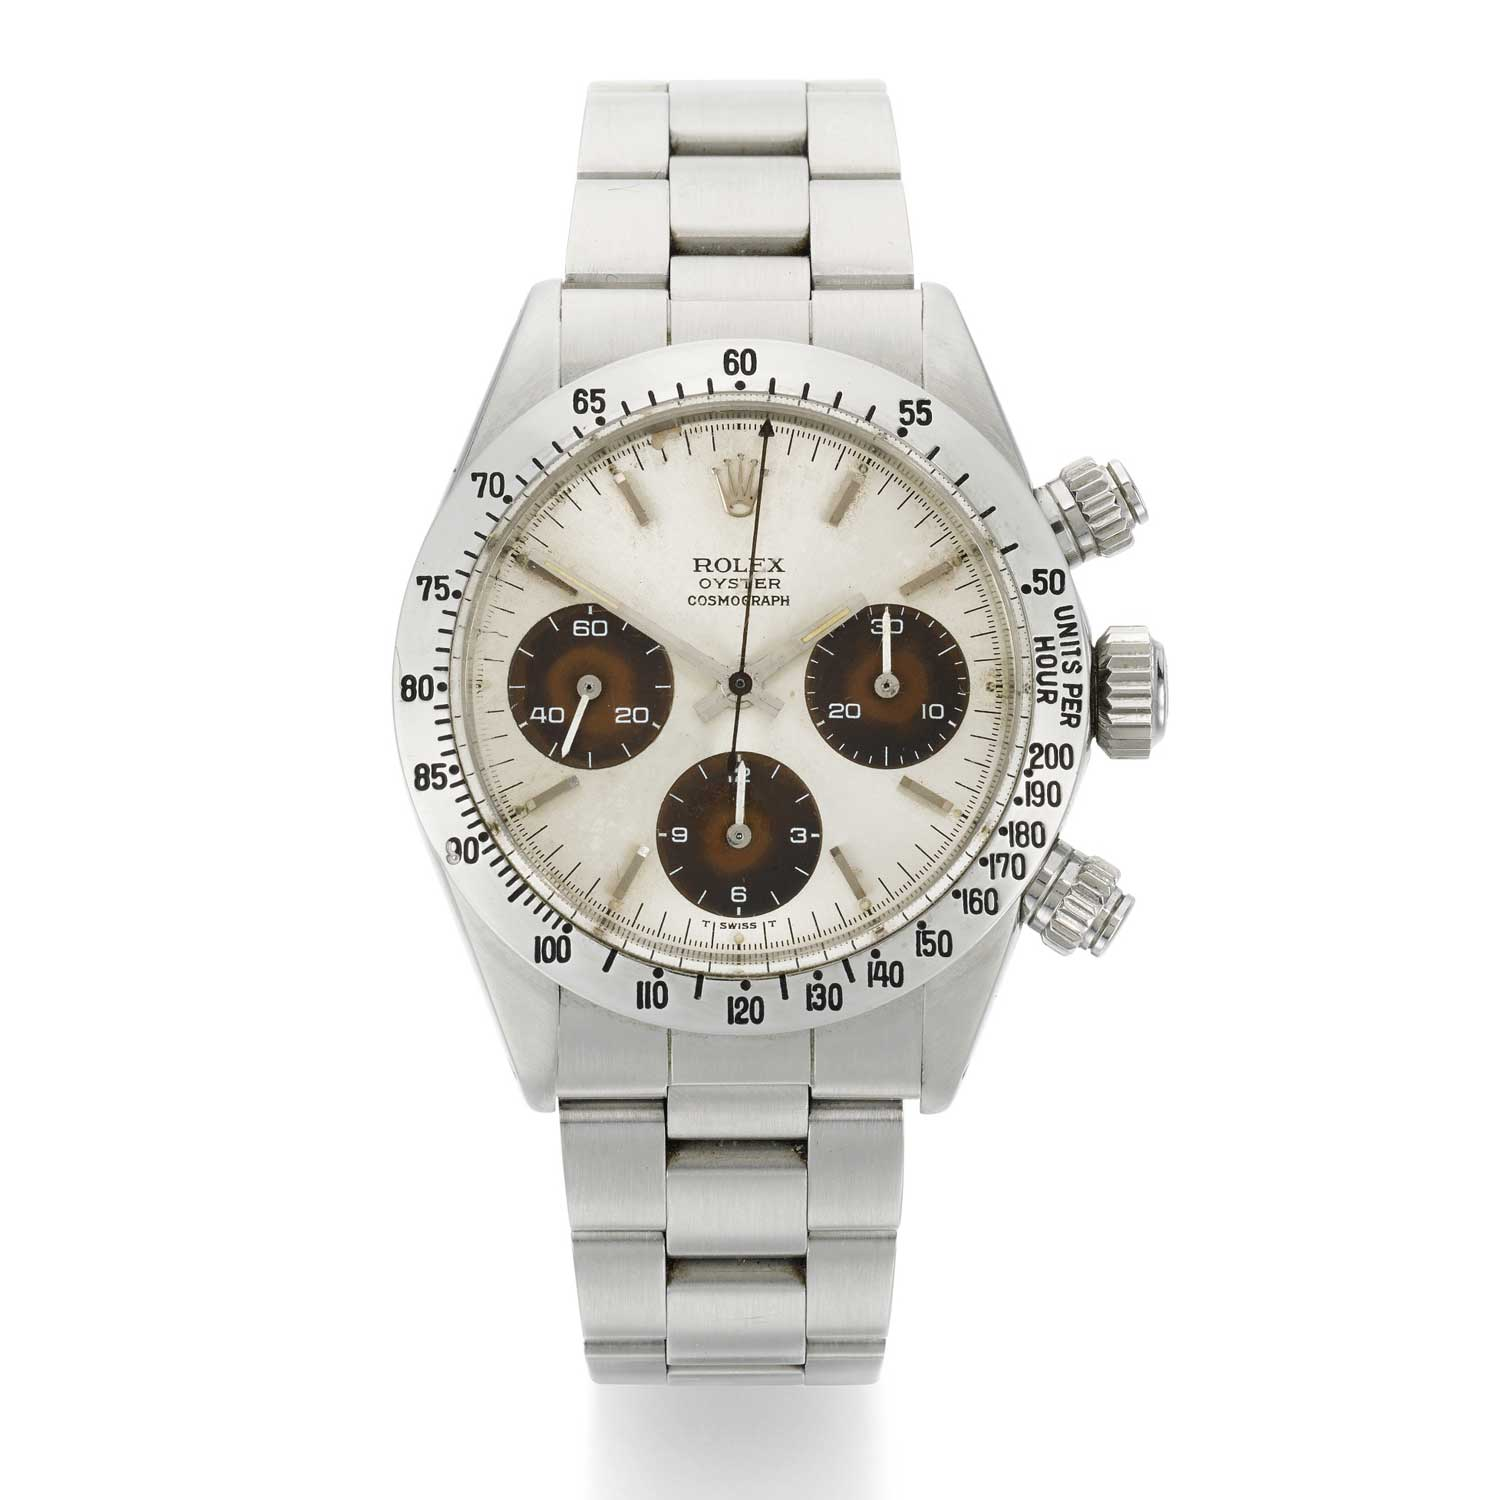 Lot 125: Rolex Daytona, Ref. 6265 stainless steel chronograph wristwatch with tropical dial and bracelet, circa 1972